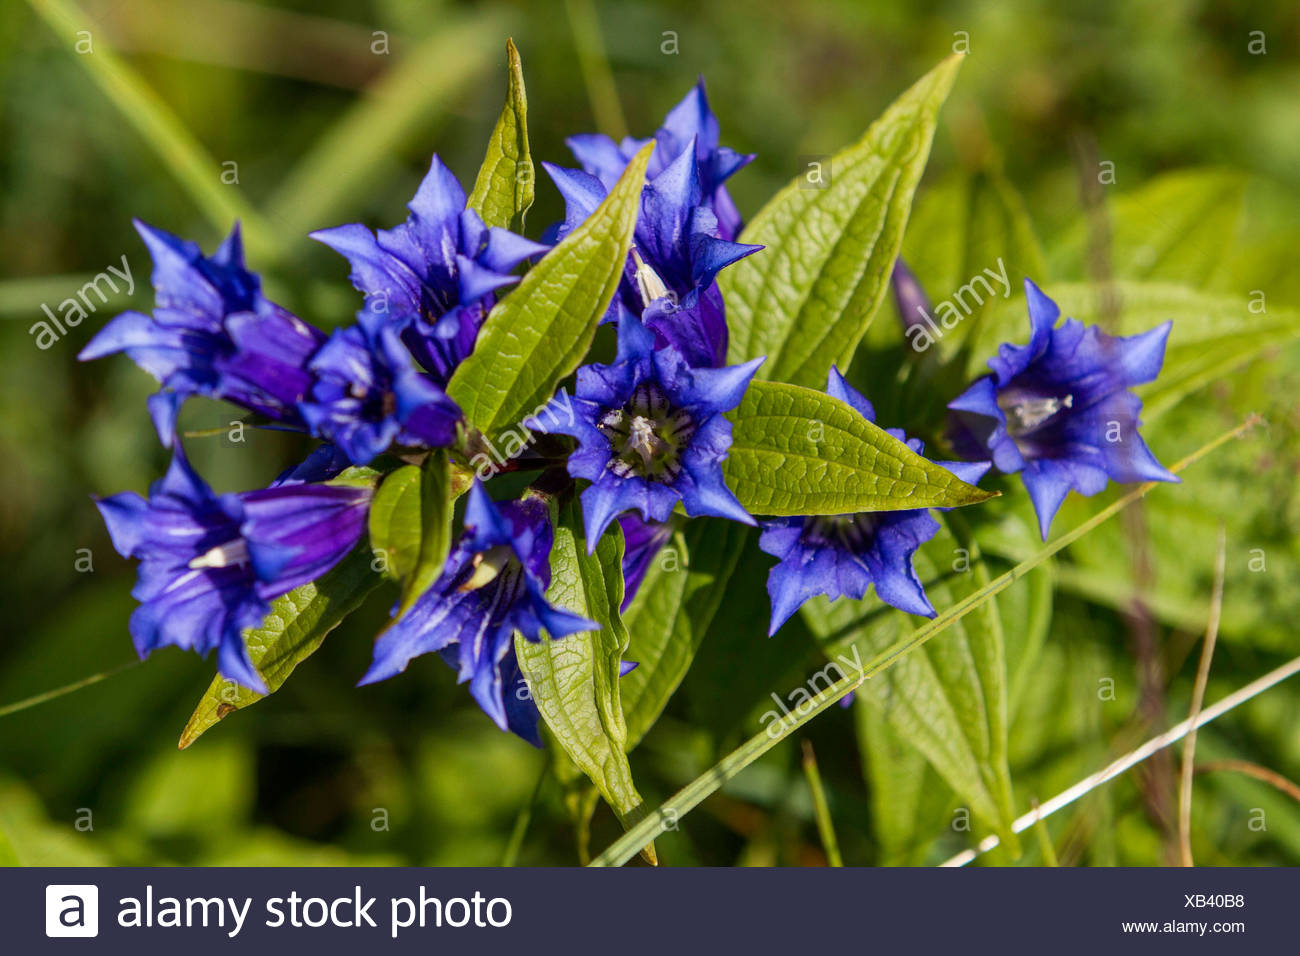 willow gentian (Gentiana asclepiadea), blooming, Germany, Bavaria - Stock Image